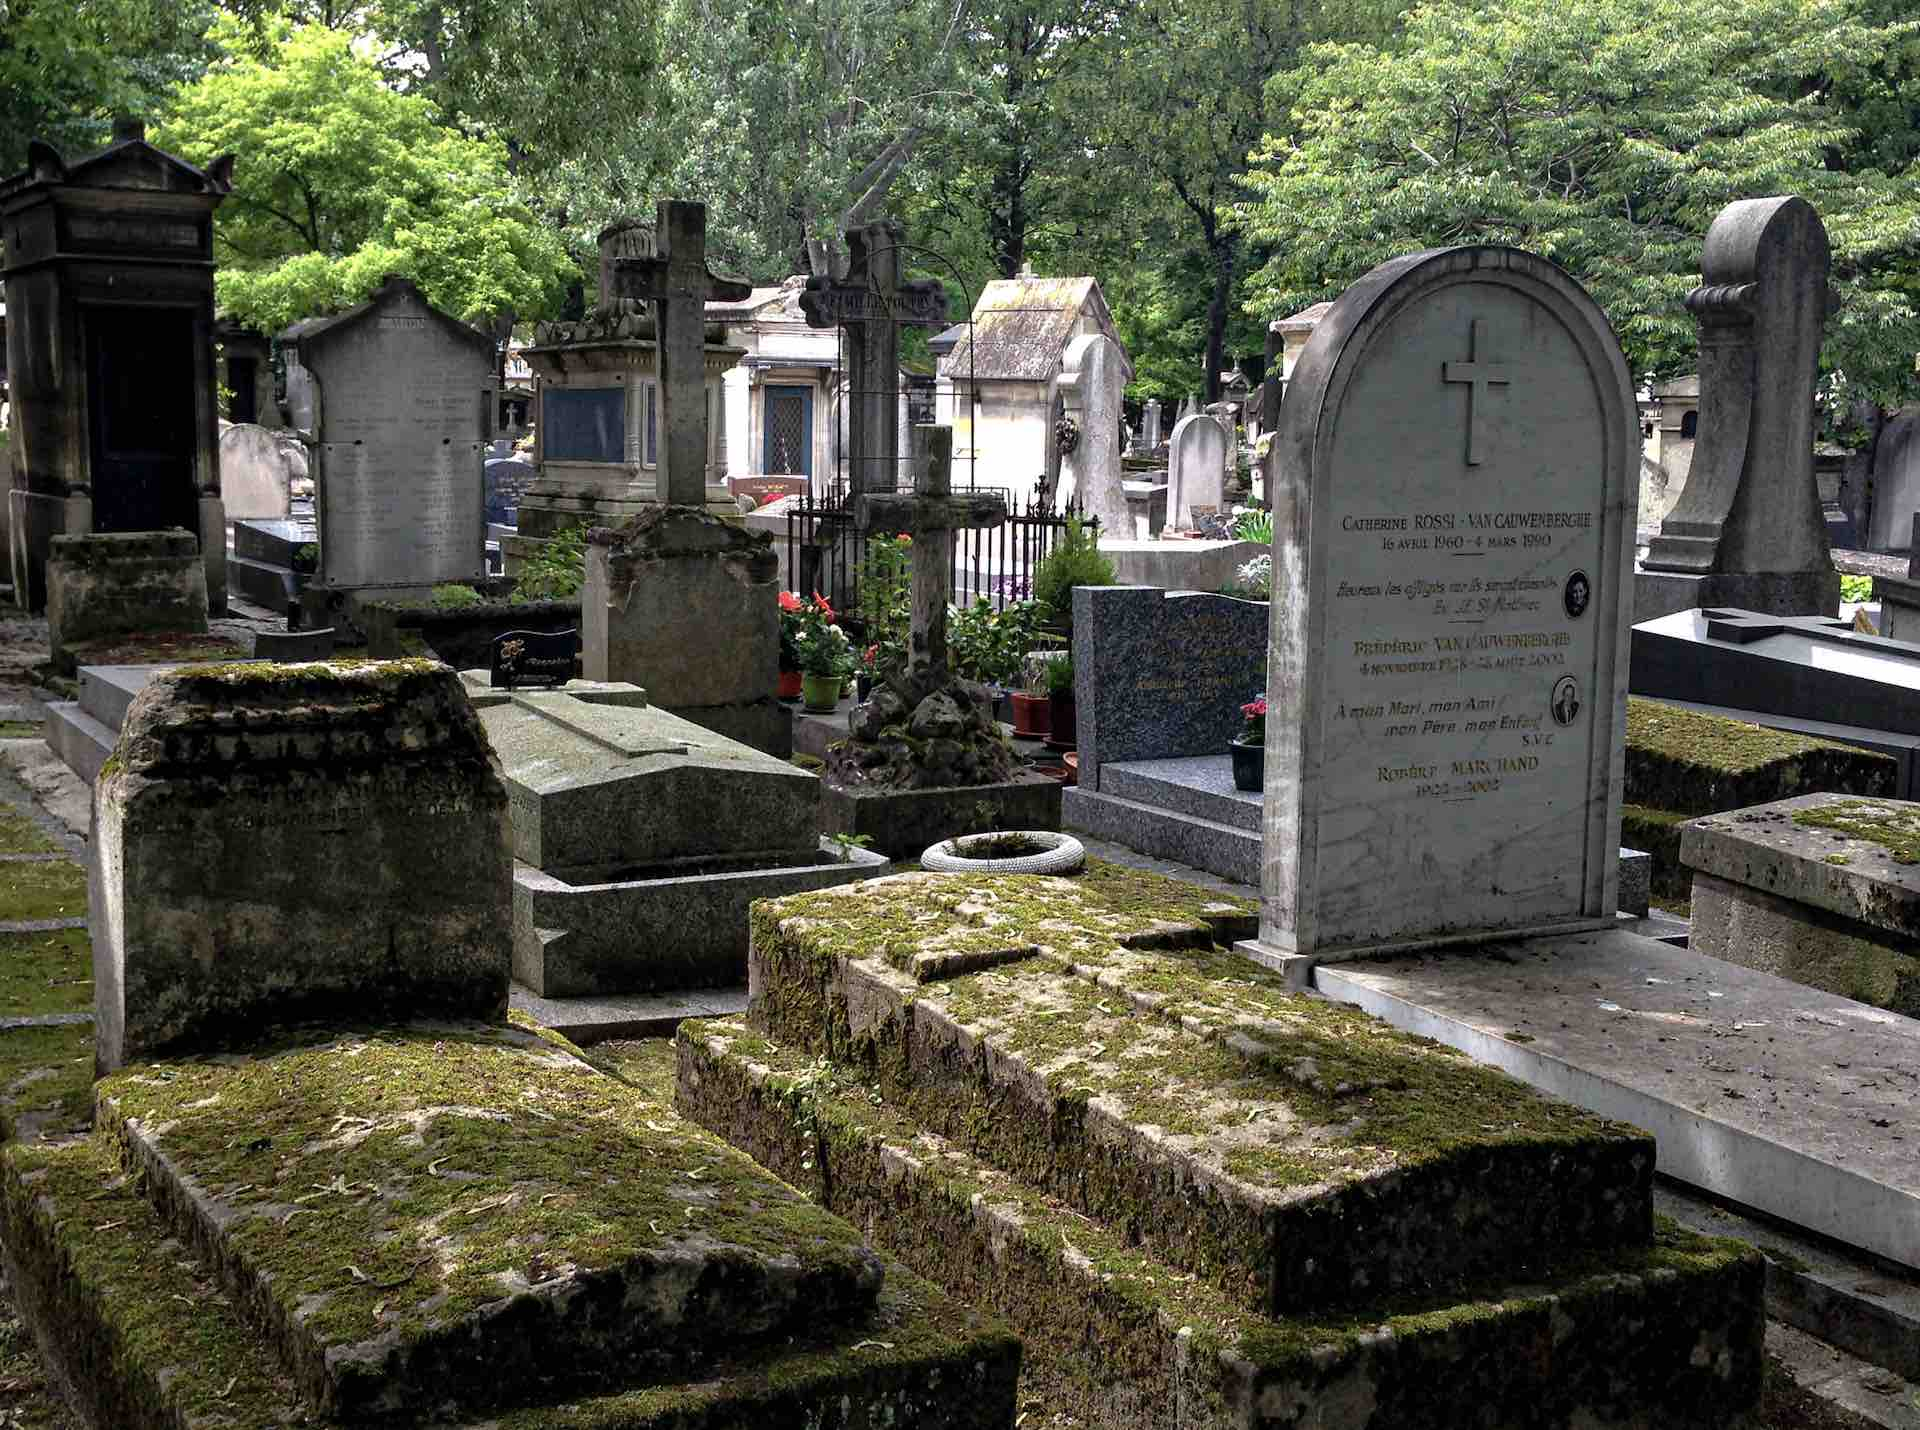 The historic Montmartre cemetery is one of the top things to do in Paris for book lovers